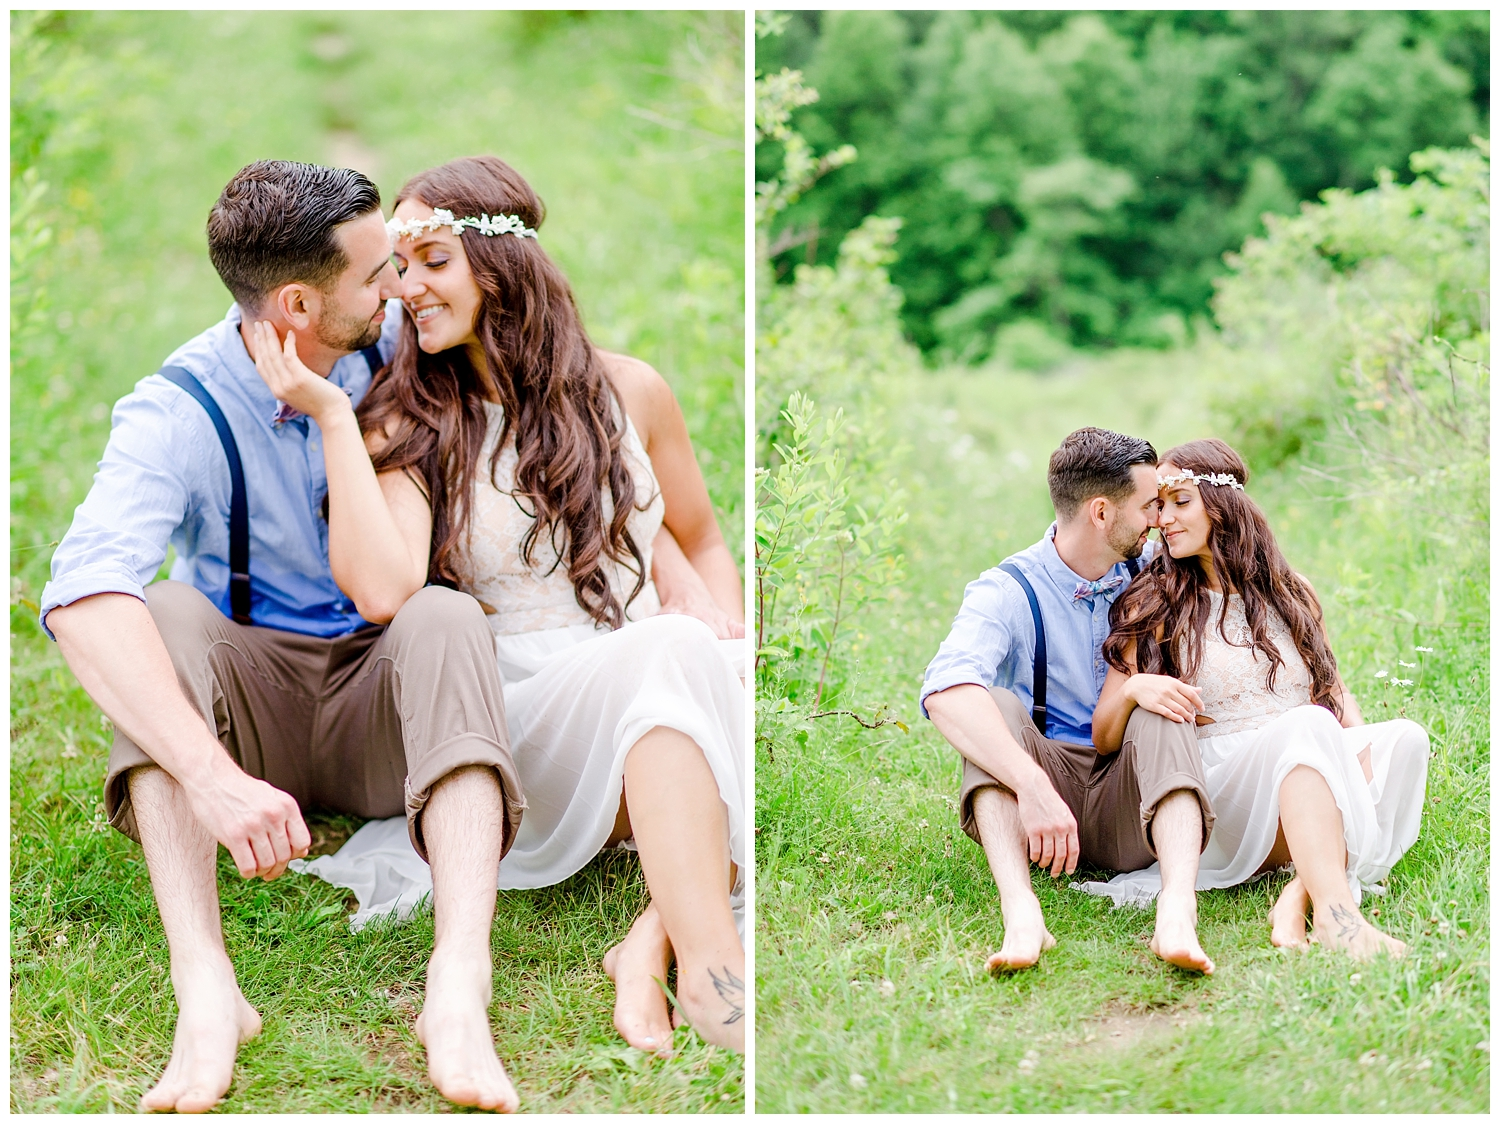 Summer Lake Engagement Session | NJ Engagement Session | Red Oak Weddings